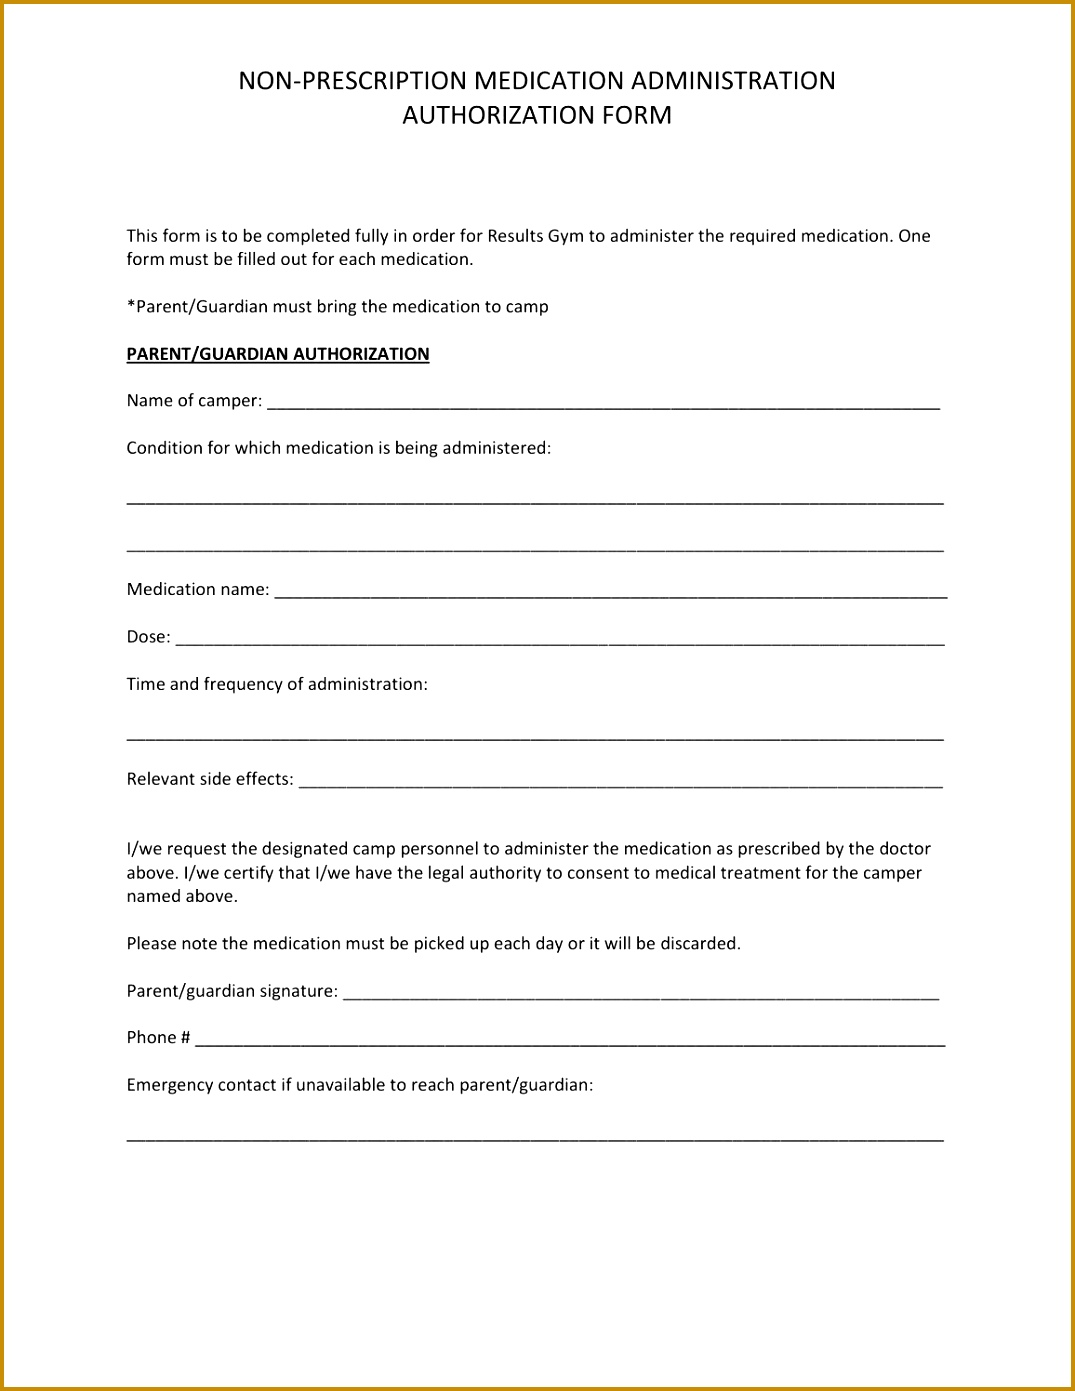 Non prescription medication administration authorization form by Courtney Connors issuu 13911075